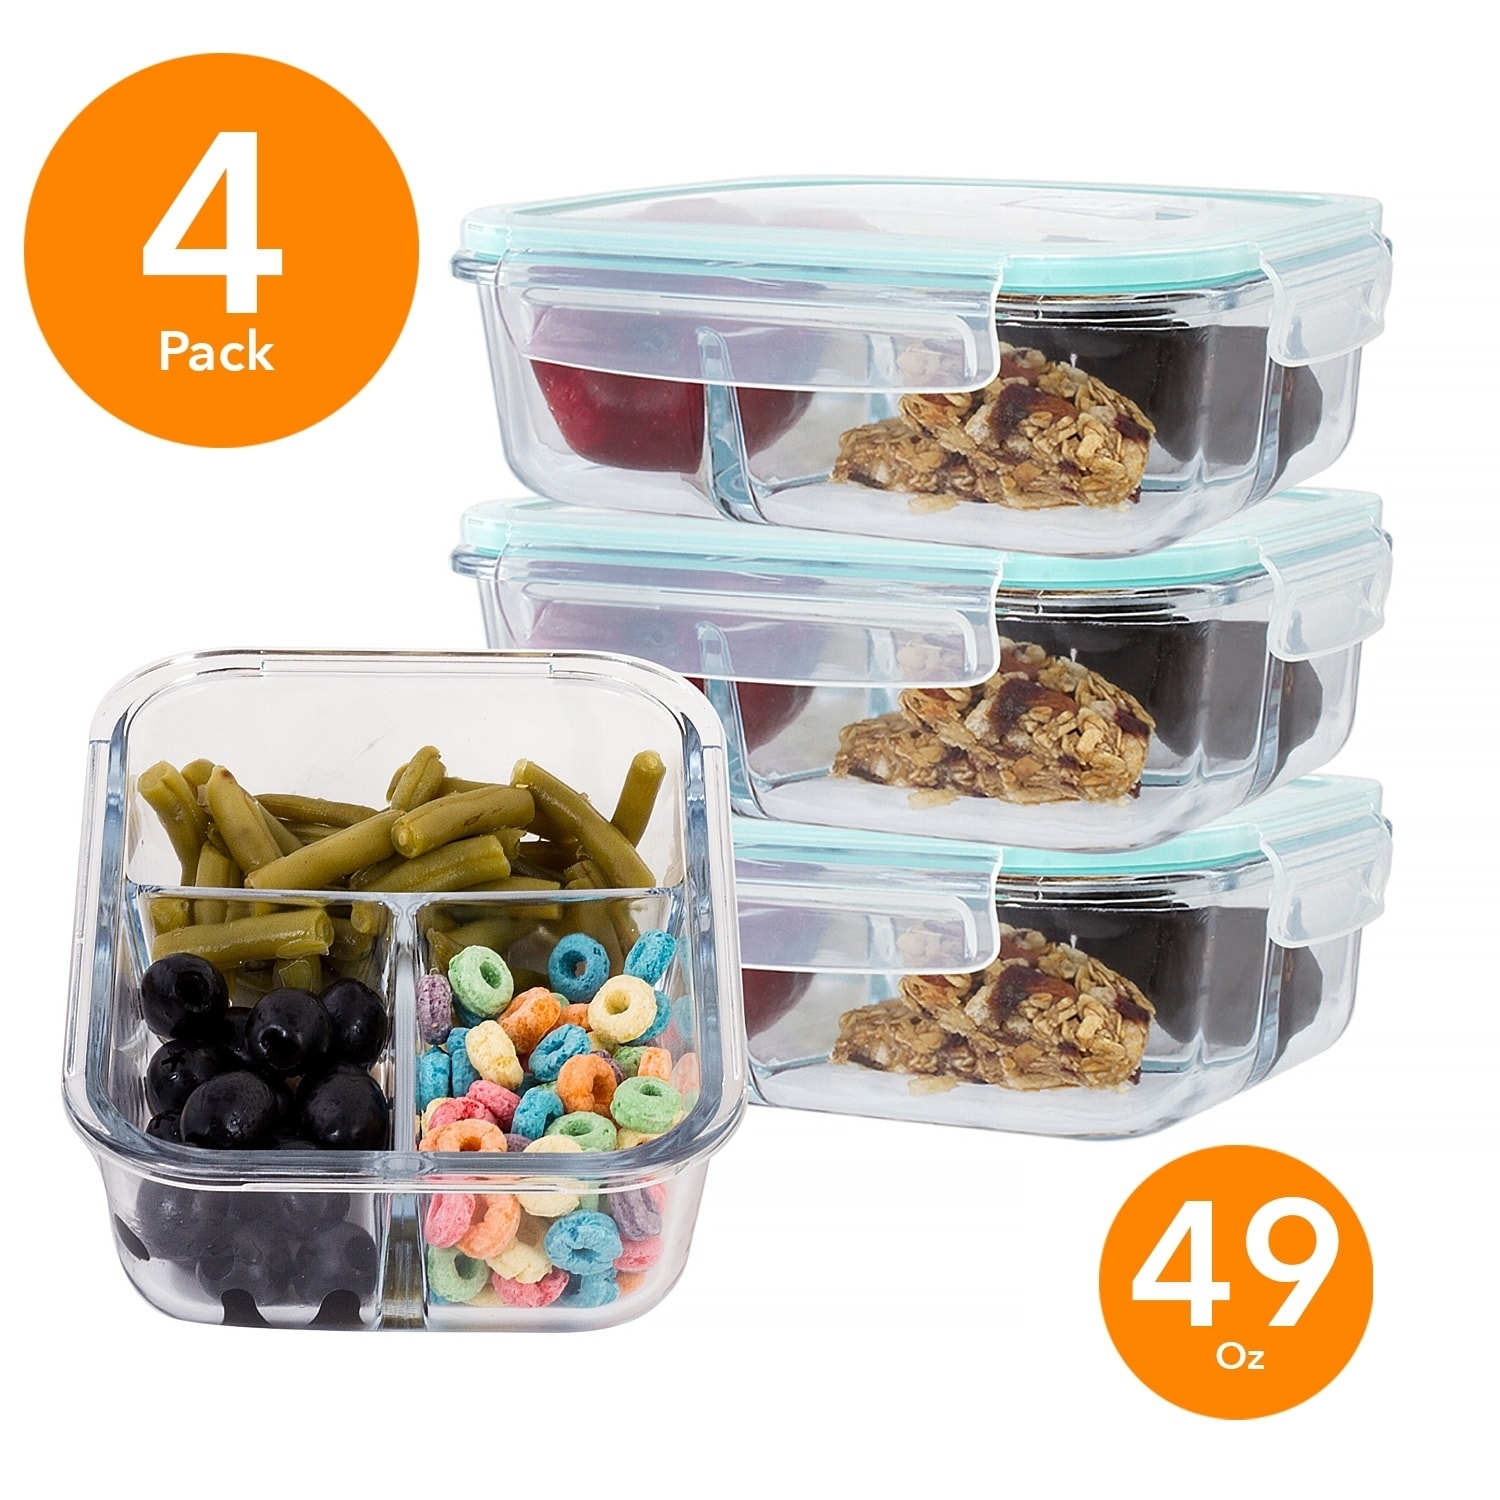 0fef2a5901e1 4 Pack Large 49 Oz Glass Meal Prep Containers 3 Divider Compartment & Snap  Locking Lid